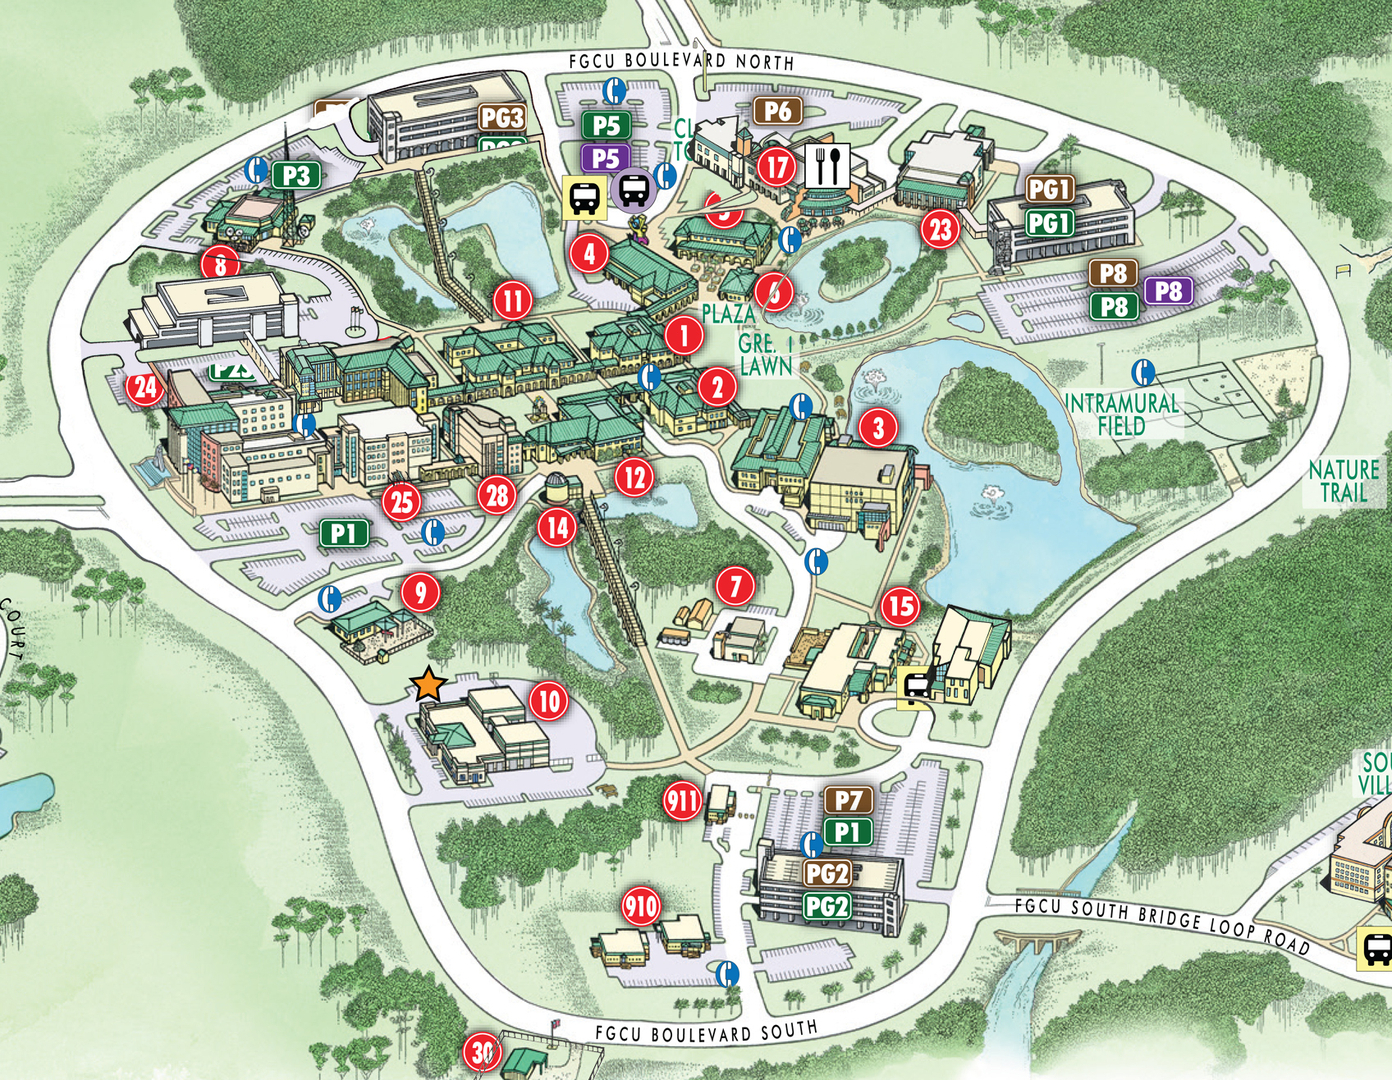 Mercyhurst University Campus Map.Notre Dame Campus Map Lackland Air Force Base Map